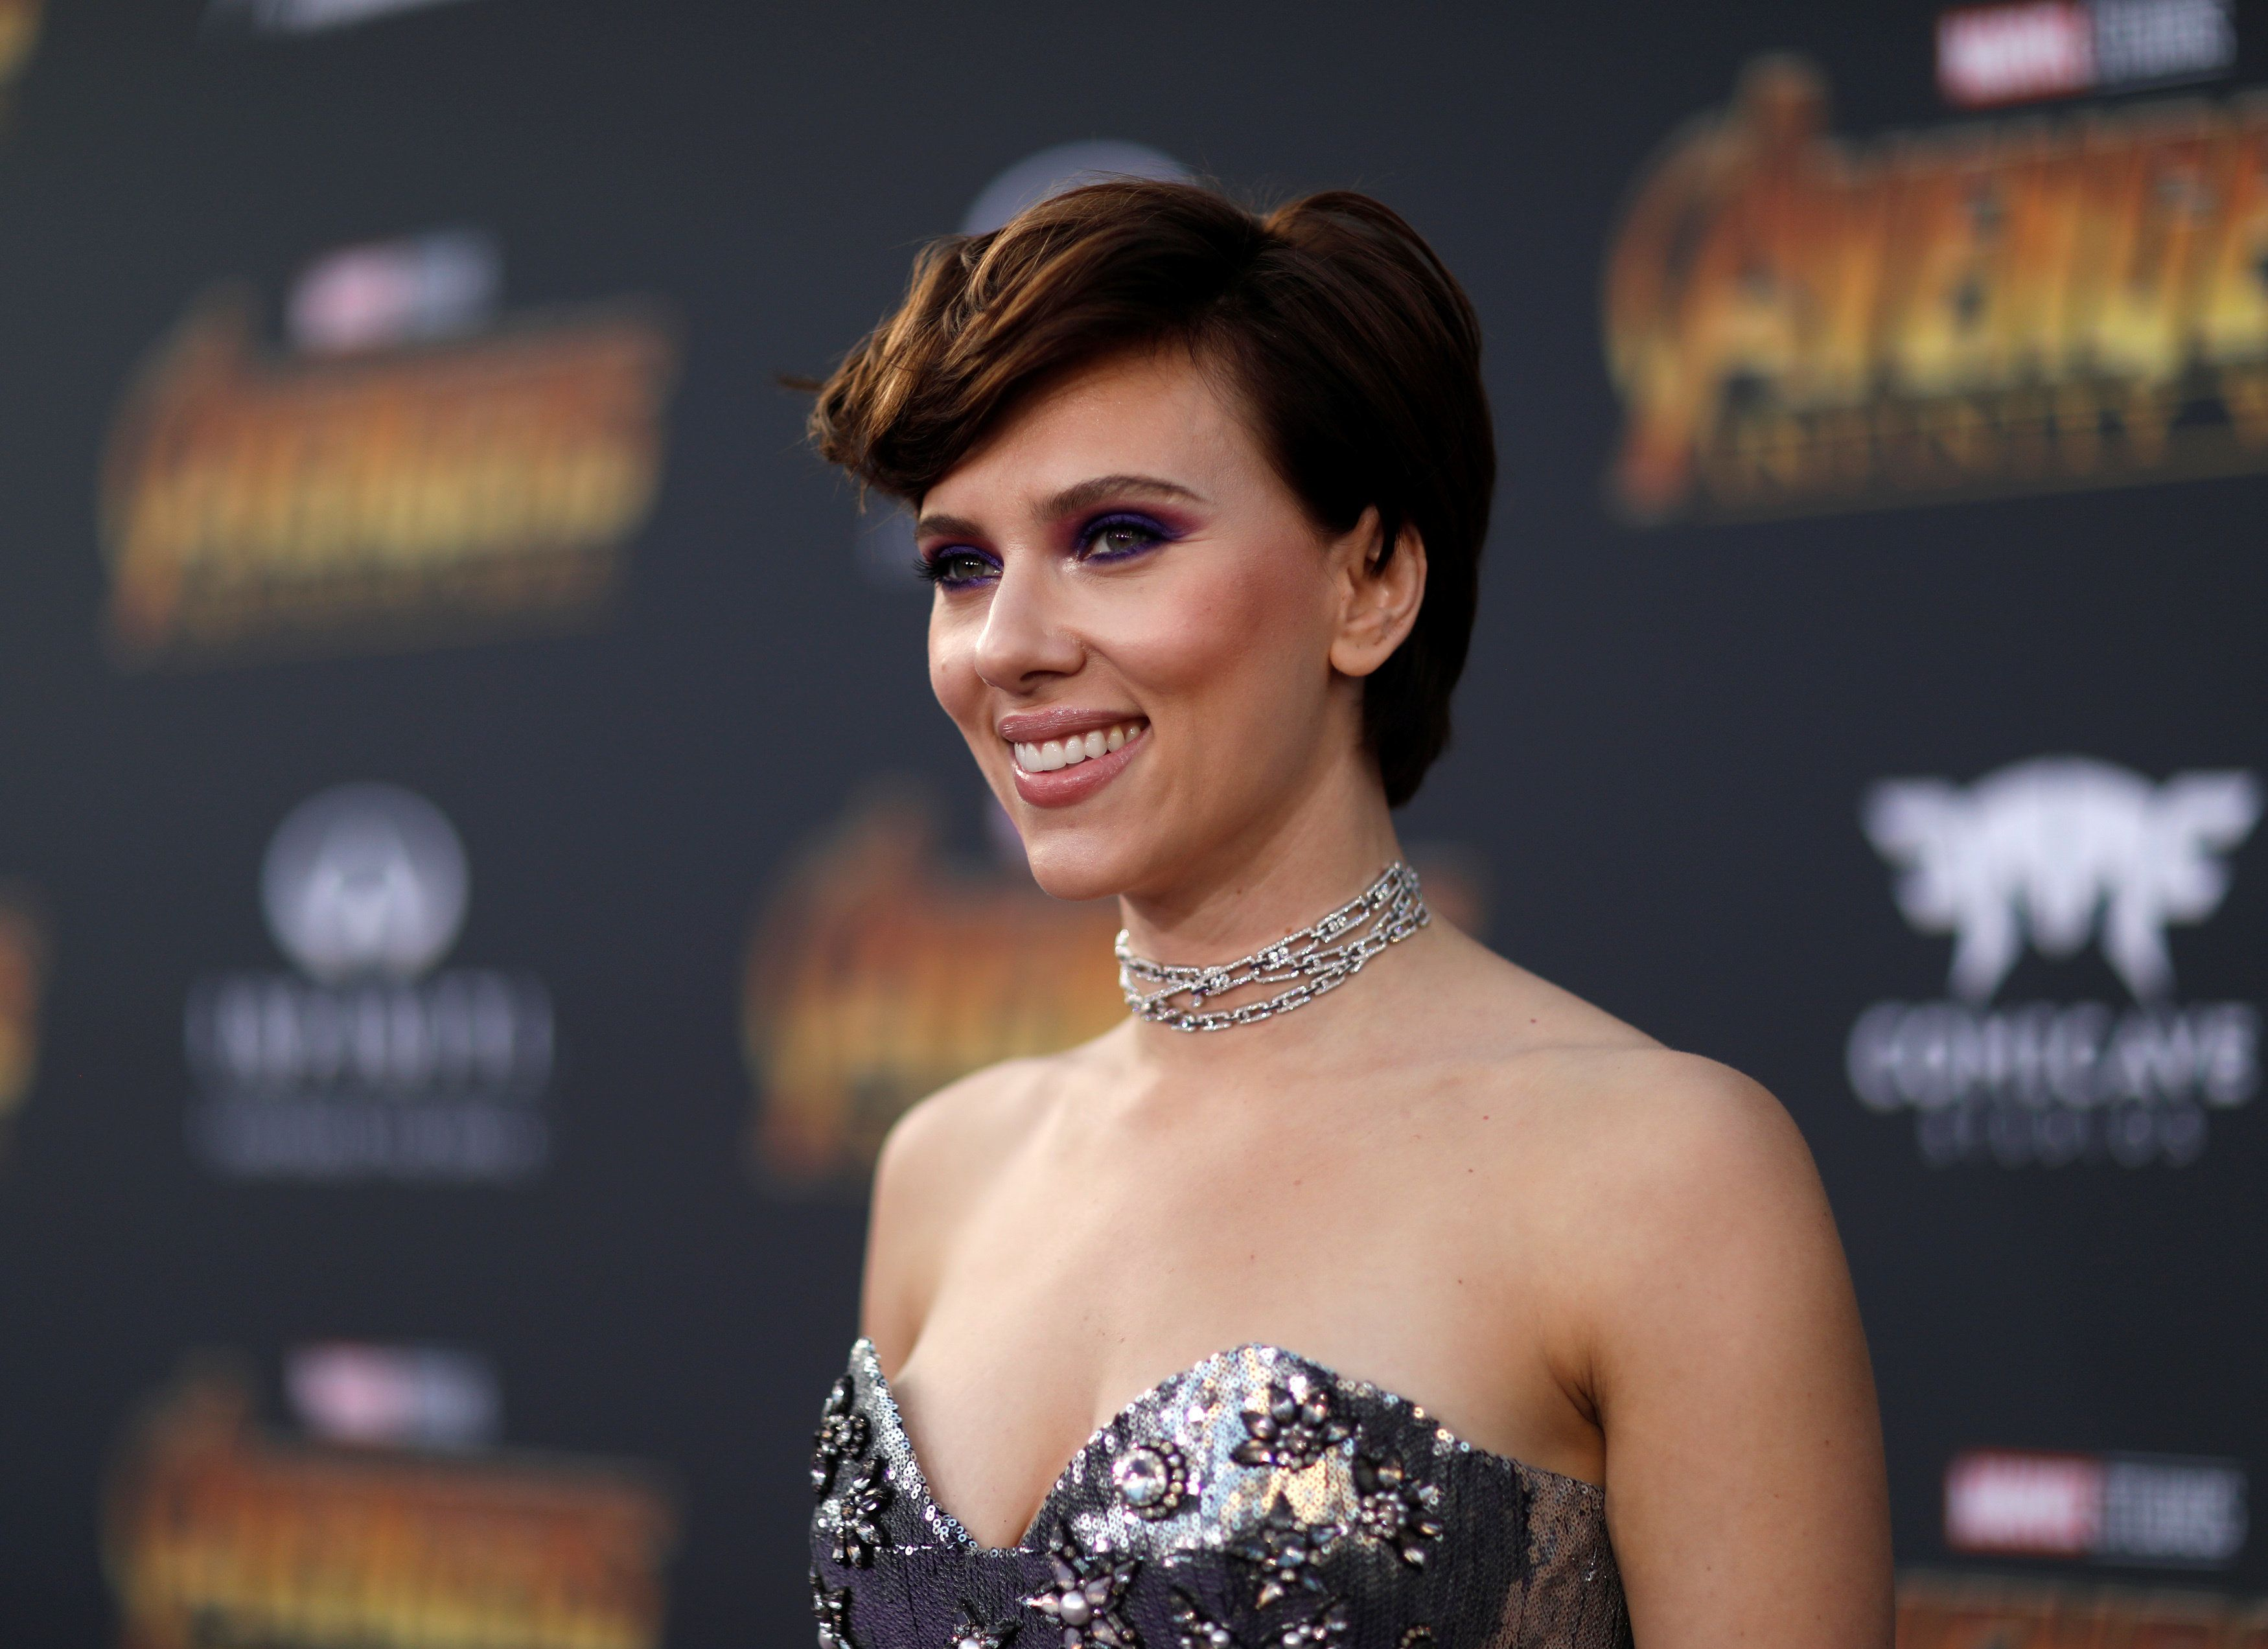 "Premiere of ""Avengers: Infinity War"" - Arrivals - Los Angeles, California, U.S., 23/04/2018 - Actress Scarlett Johansson. REUTERS/Mario Anzuoni"